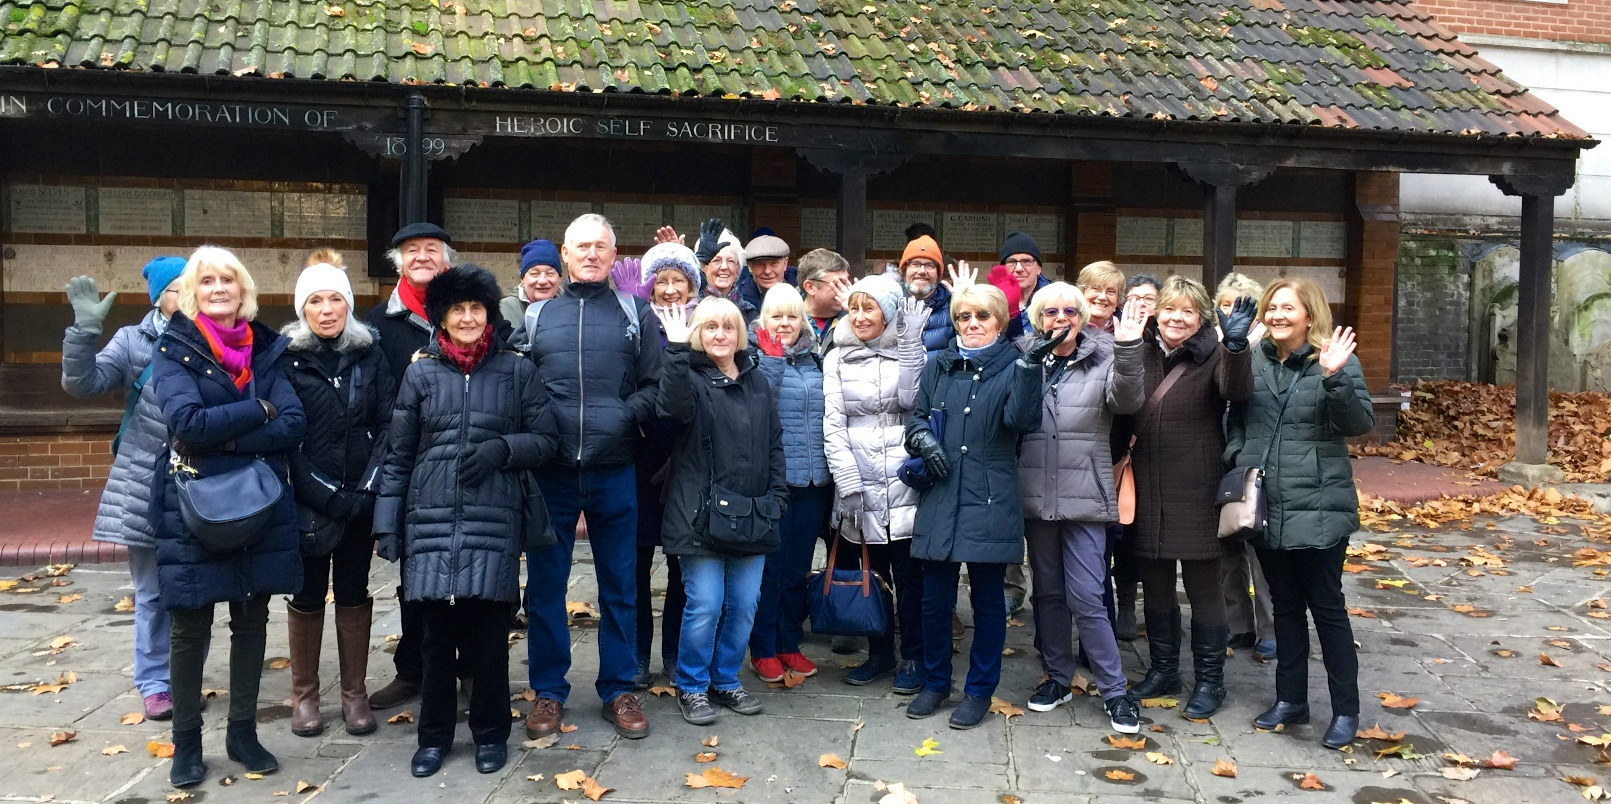 U3A_LondonWalk_Clerkenwell_November2018 3